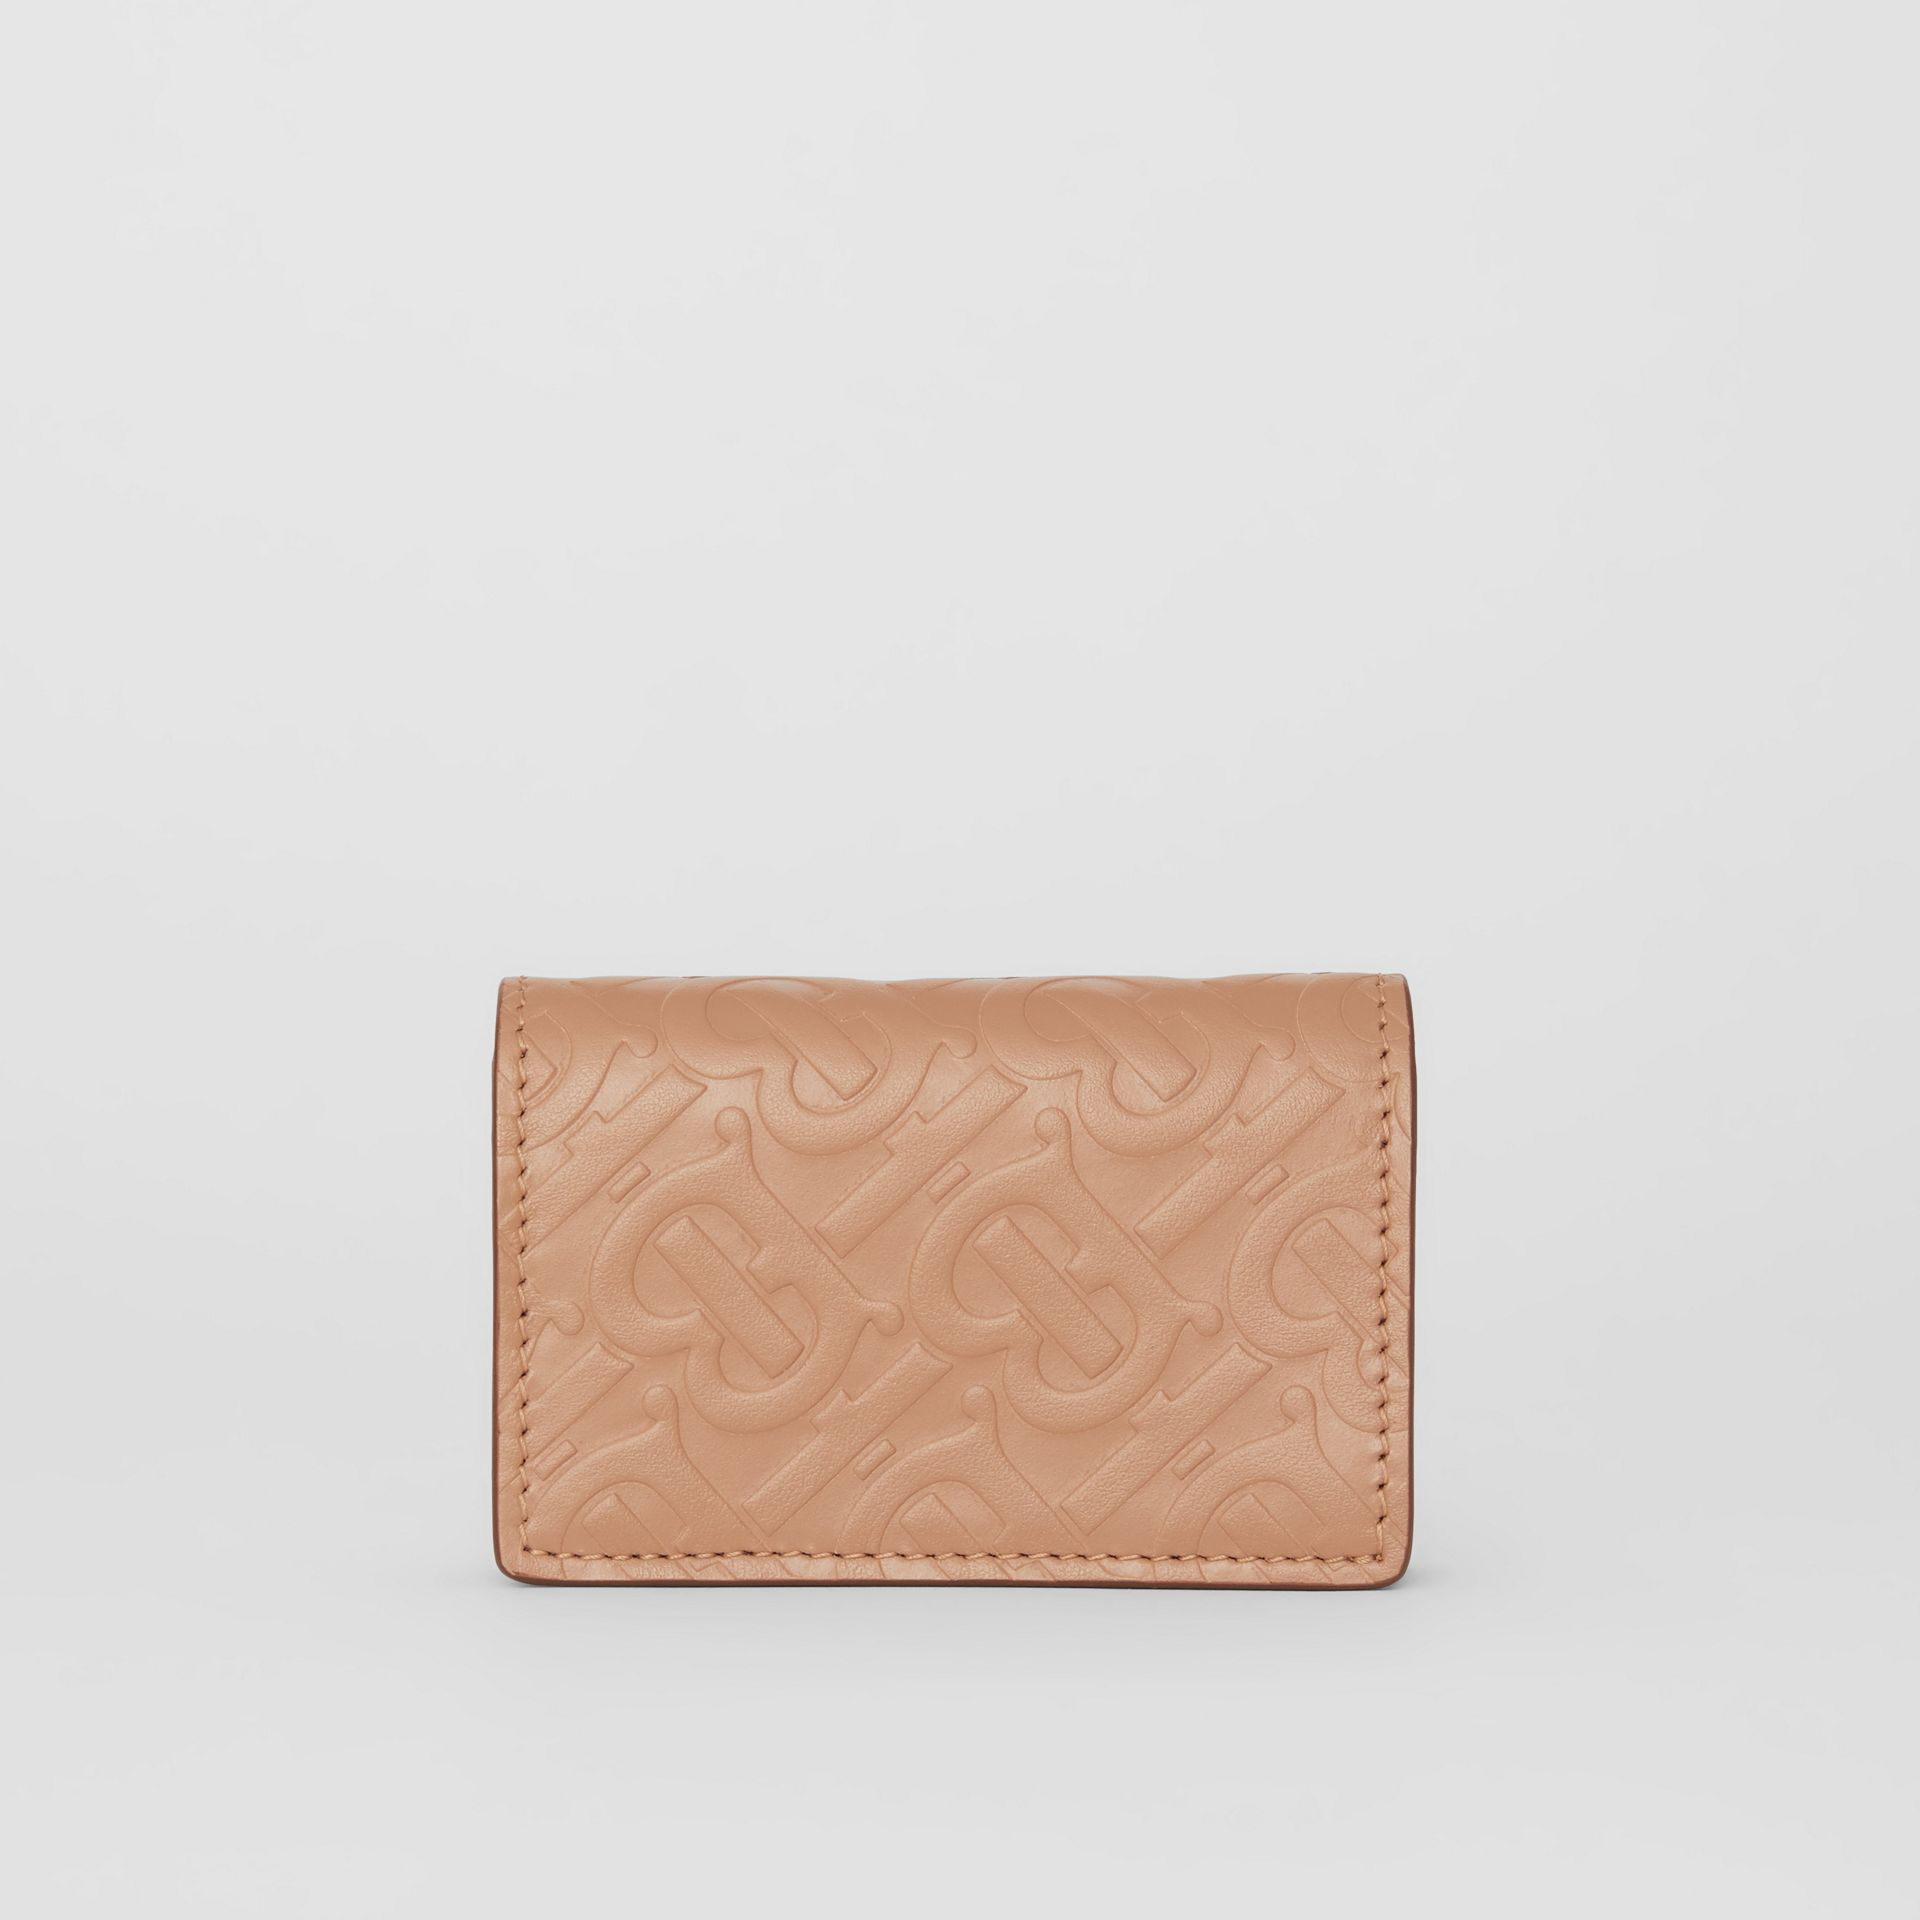 Monogram Leather Card Case in Light Camel | Burberry - gallery image 4